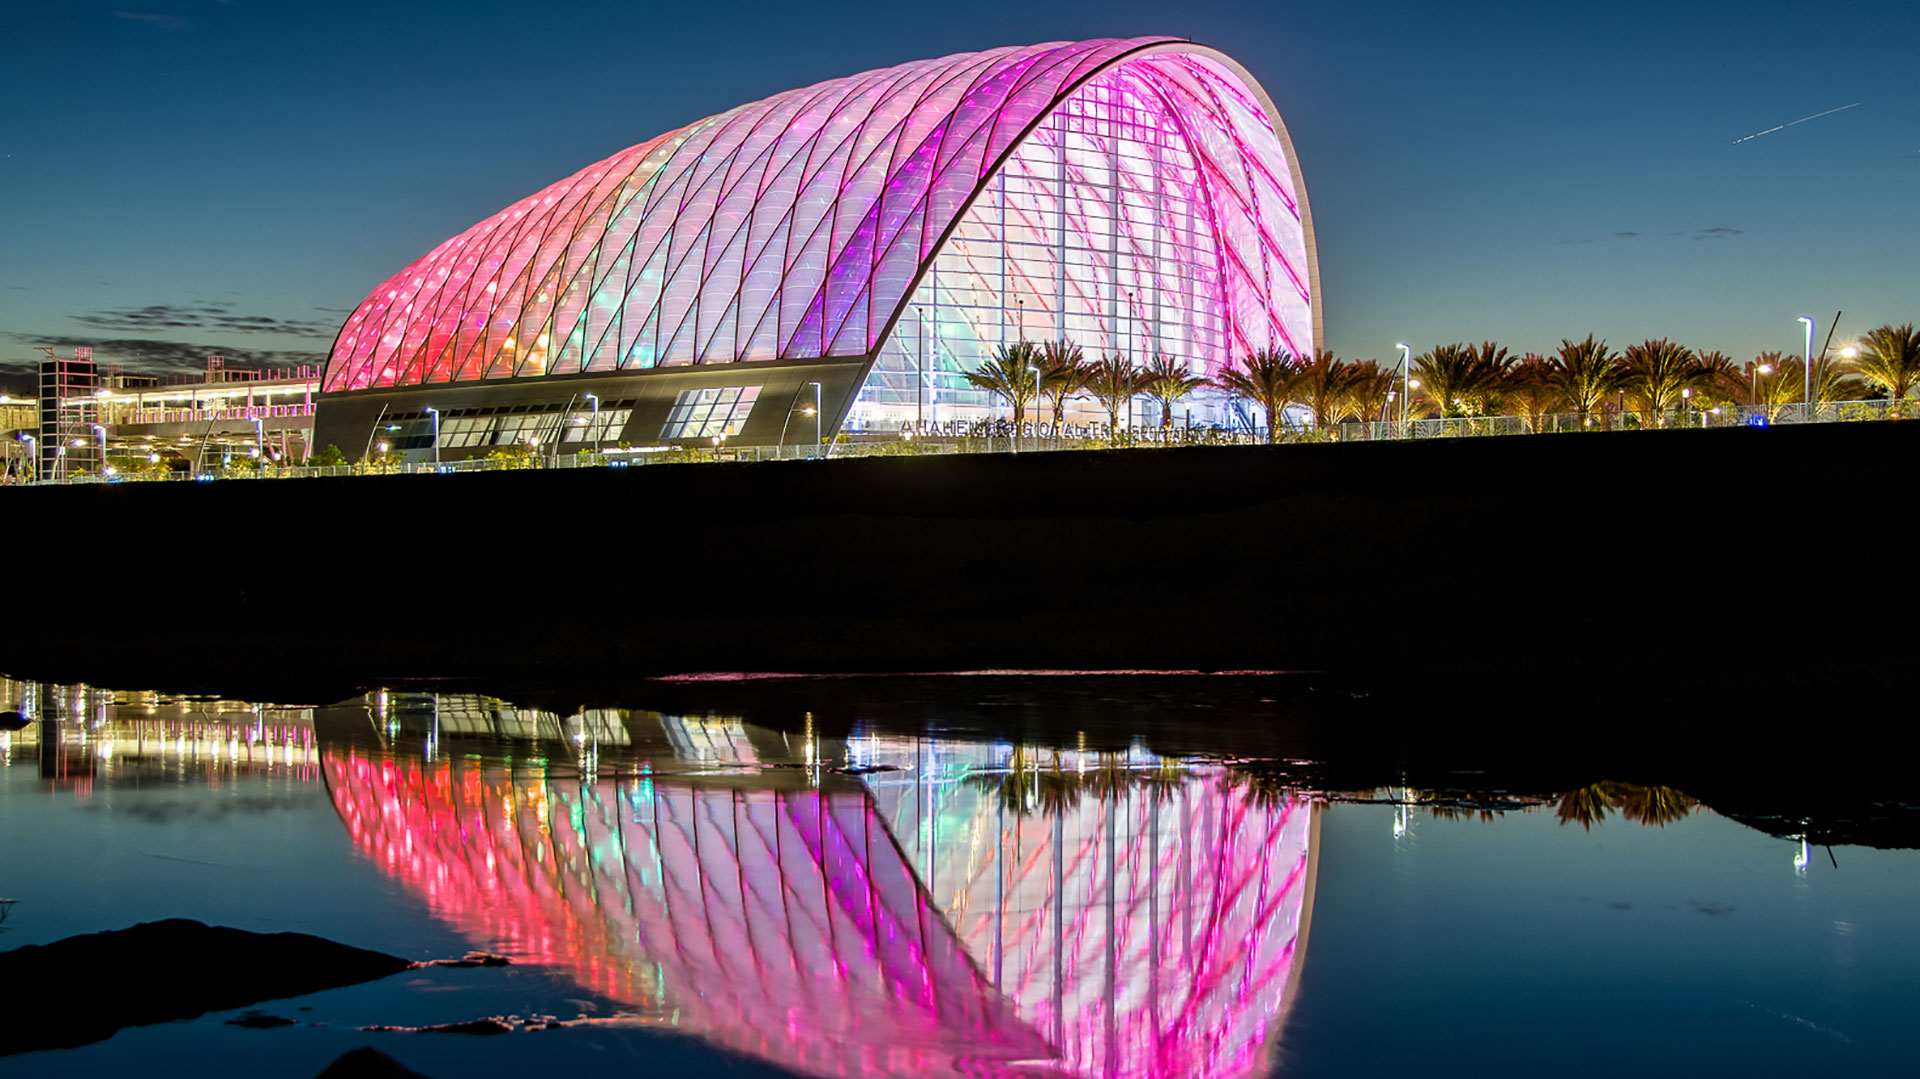 Outdoor evening shot of the Anaheim Regional Transportation Intermodal Center overlooking the Santa Ana River.